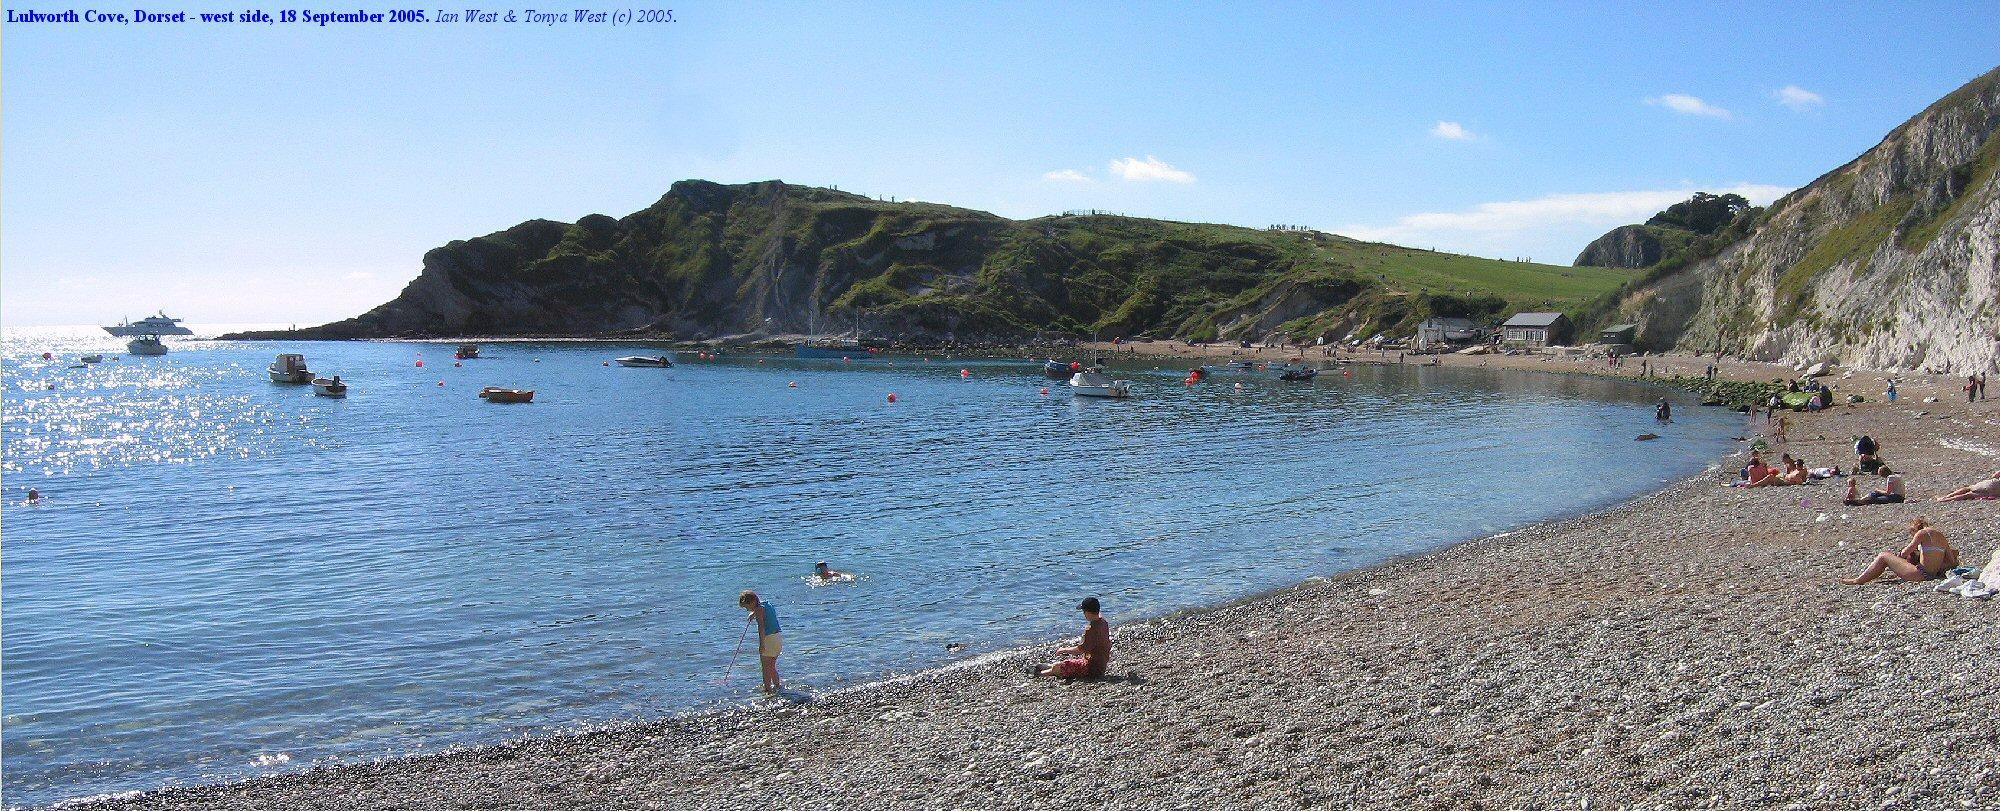 lulworth cove geography case study a level